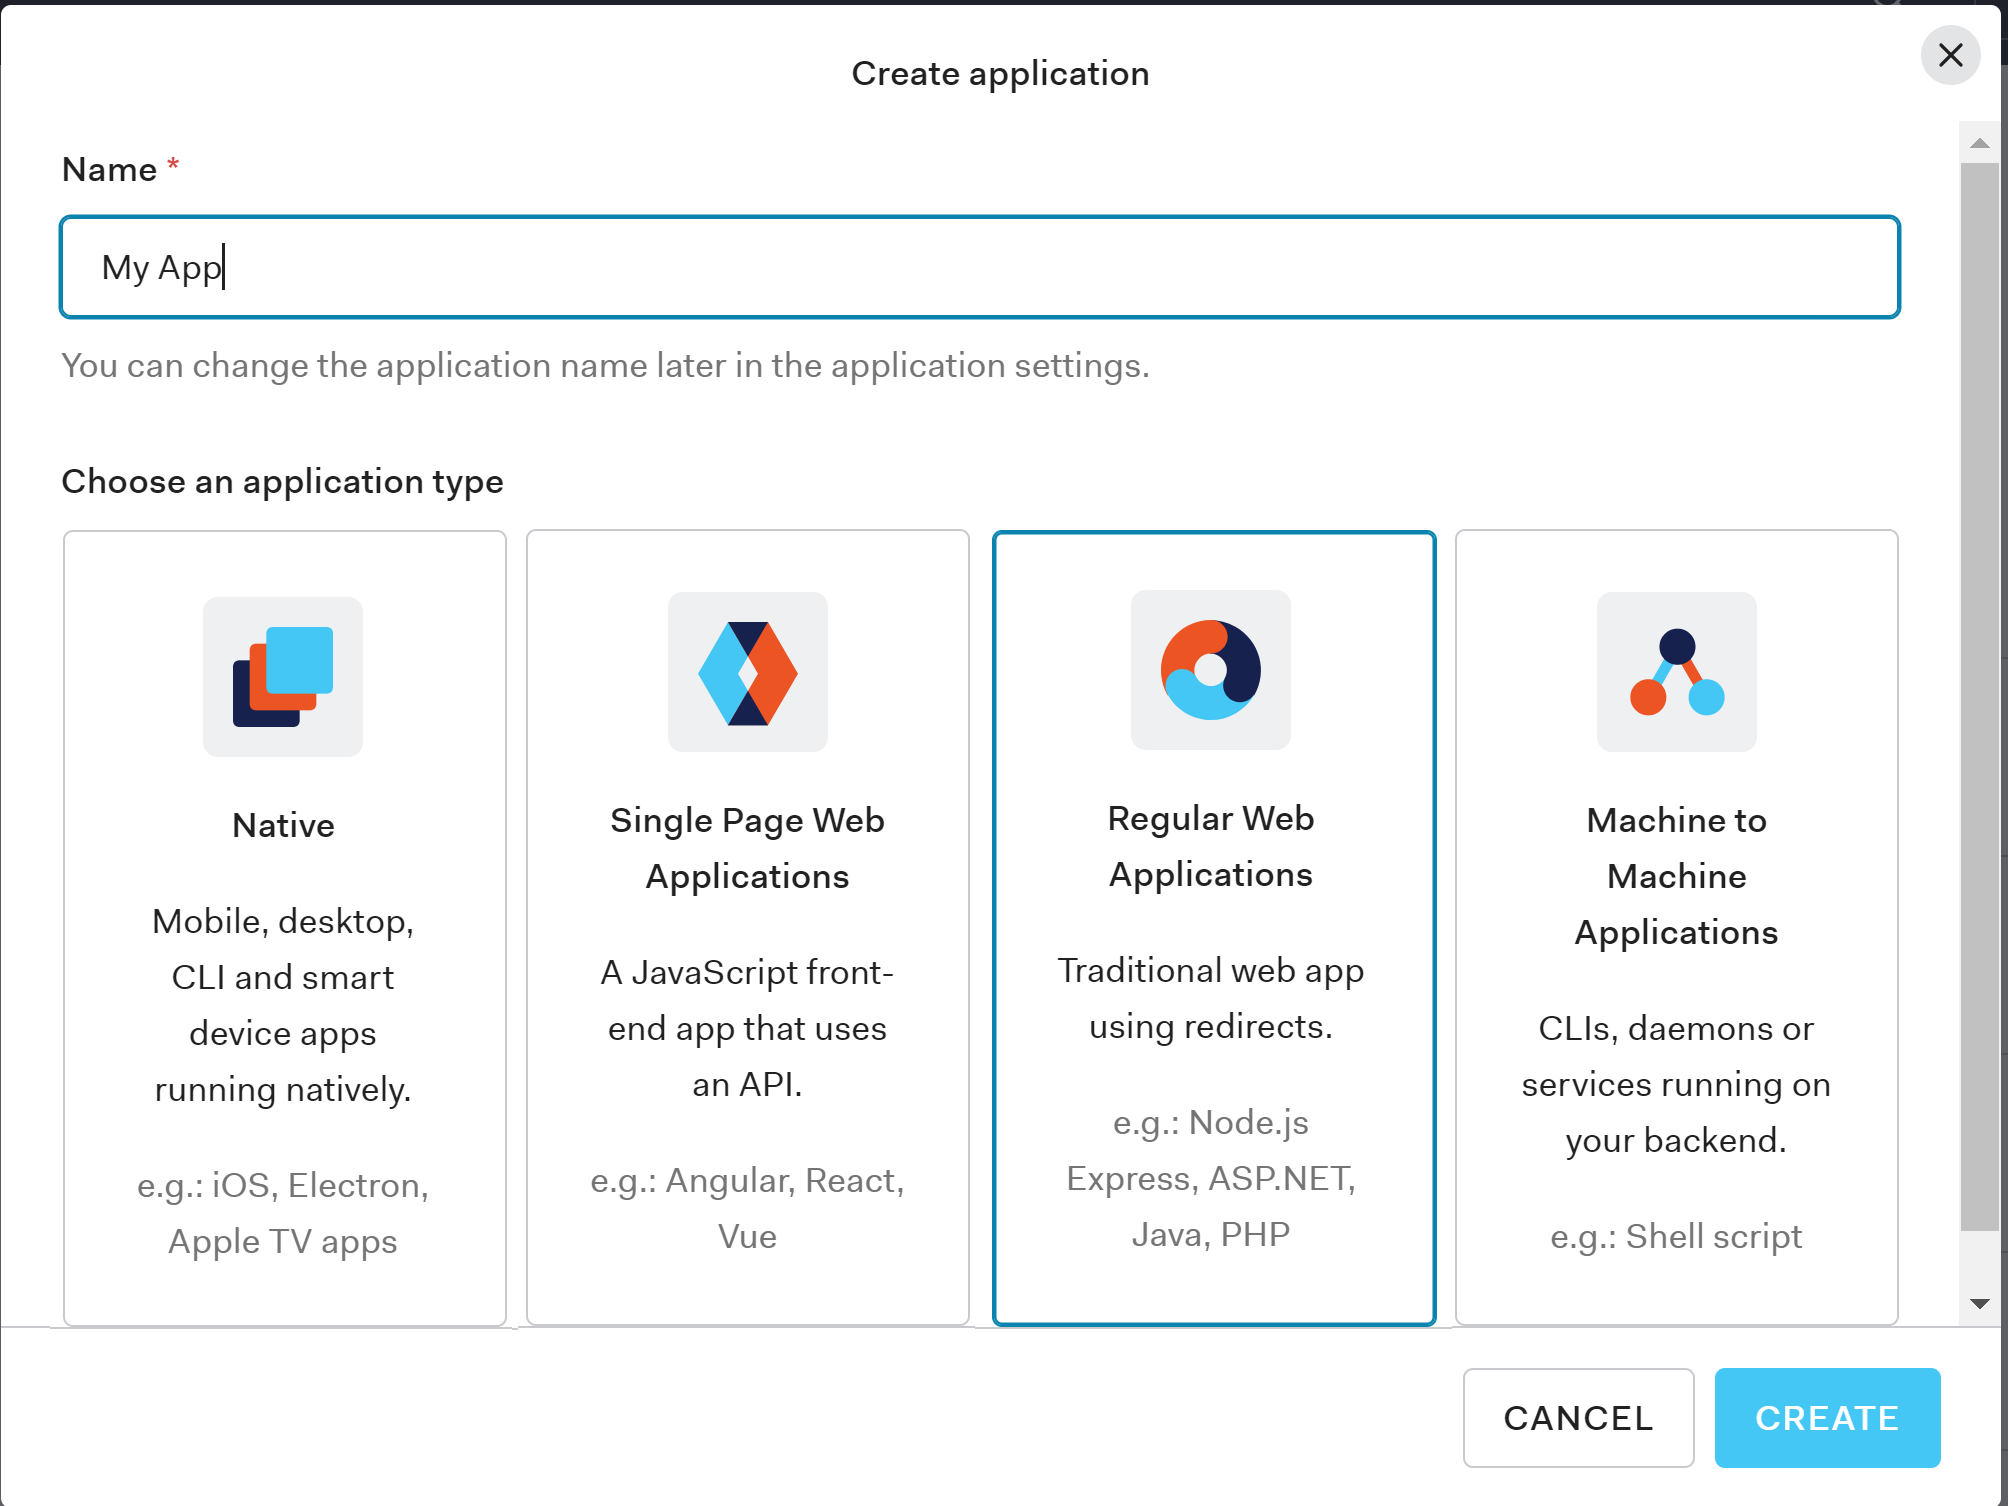 Creating applications in the Auth0 Dashboard